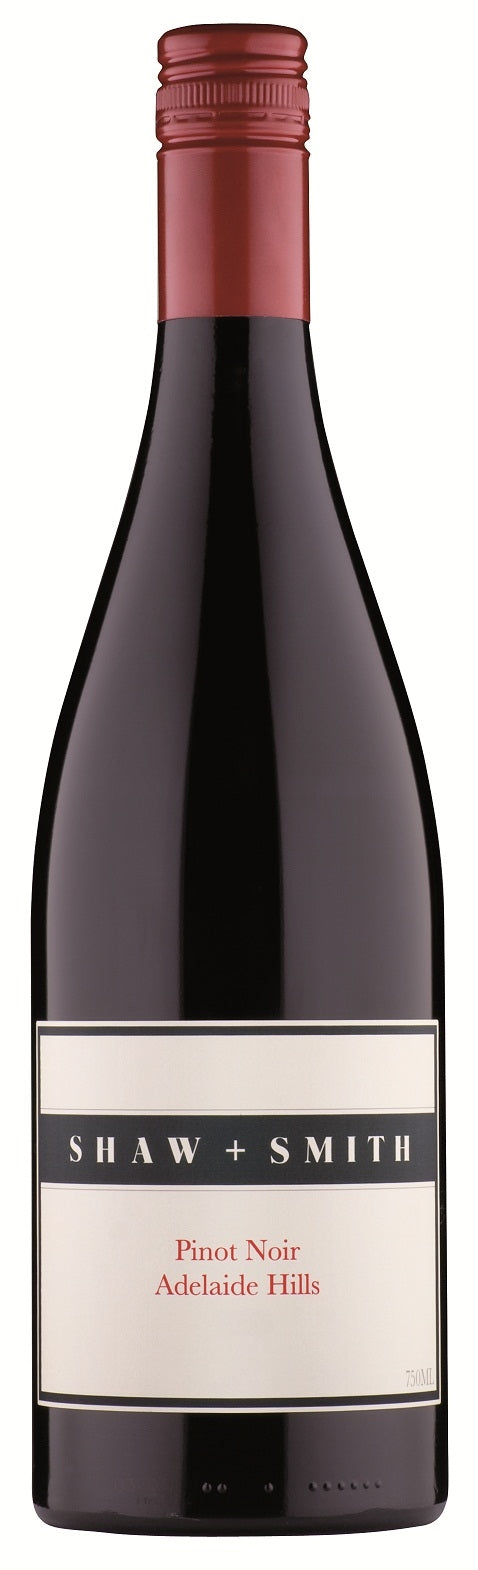 Shaw + Smith, Adelaide Hills Pinot Noir 2016